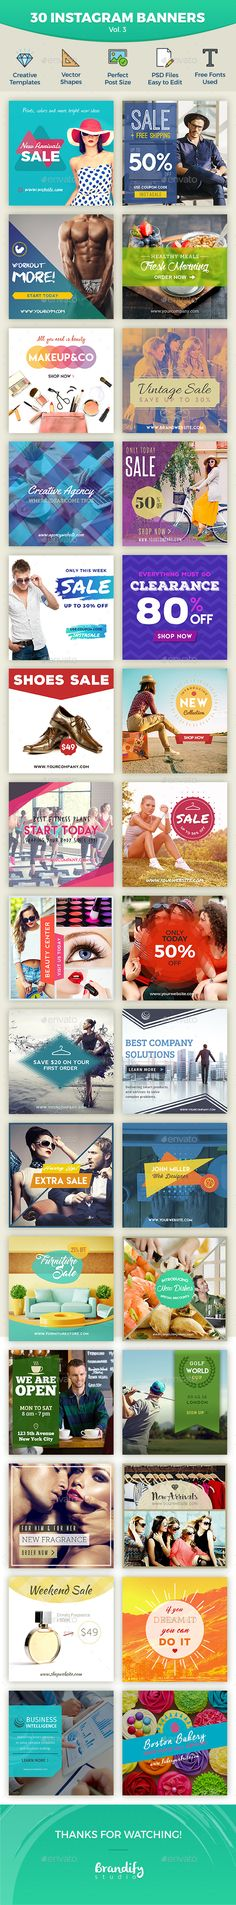 Instagram Banner Templates  #square banner #$5